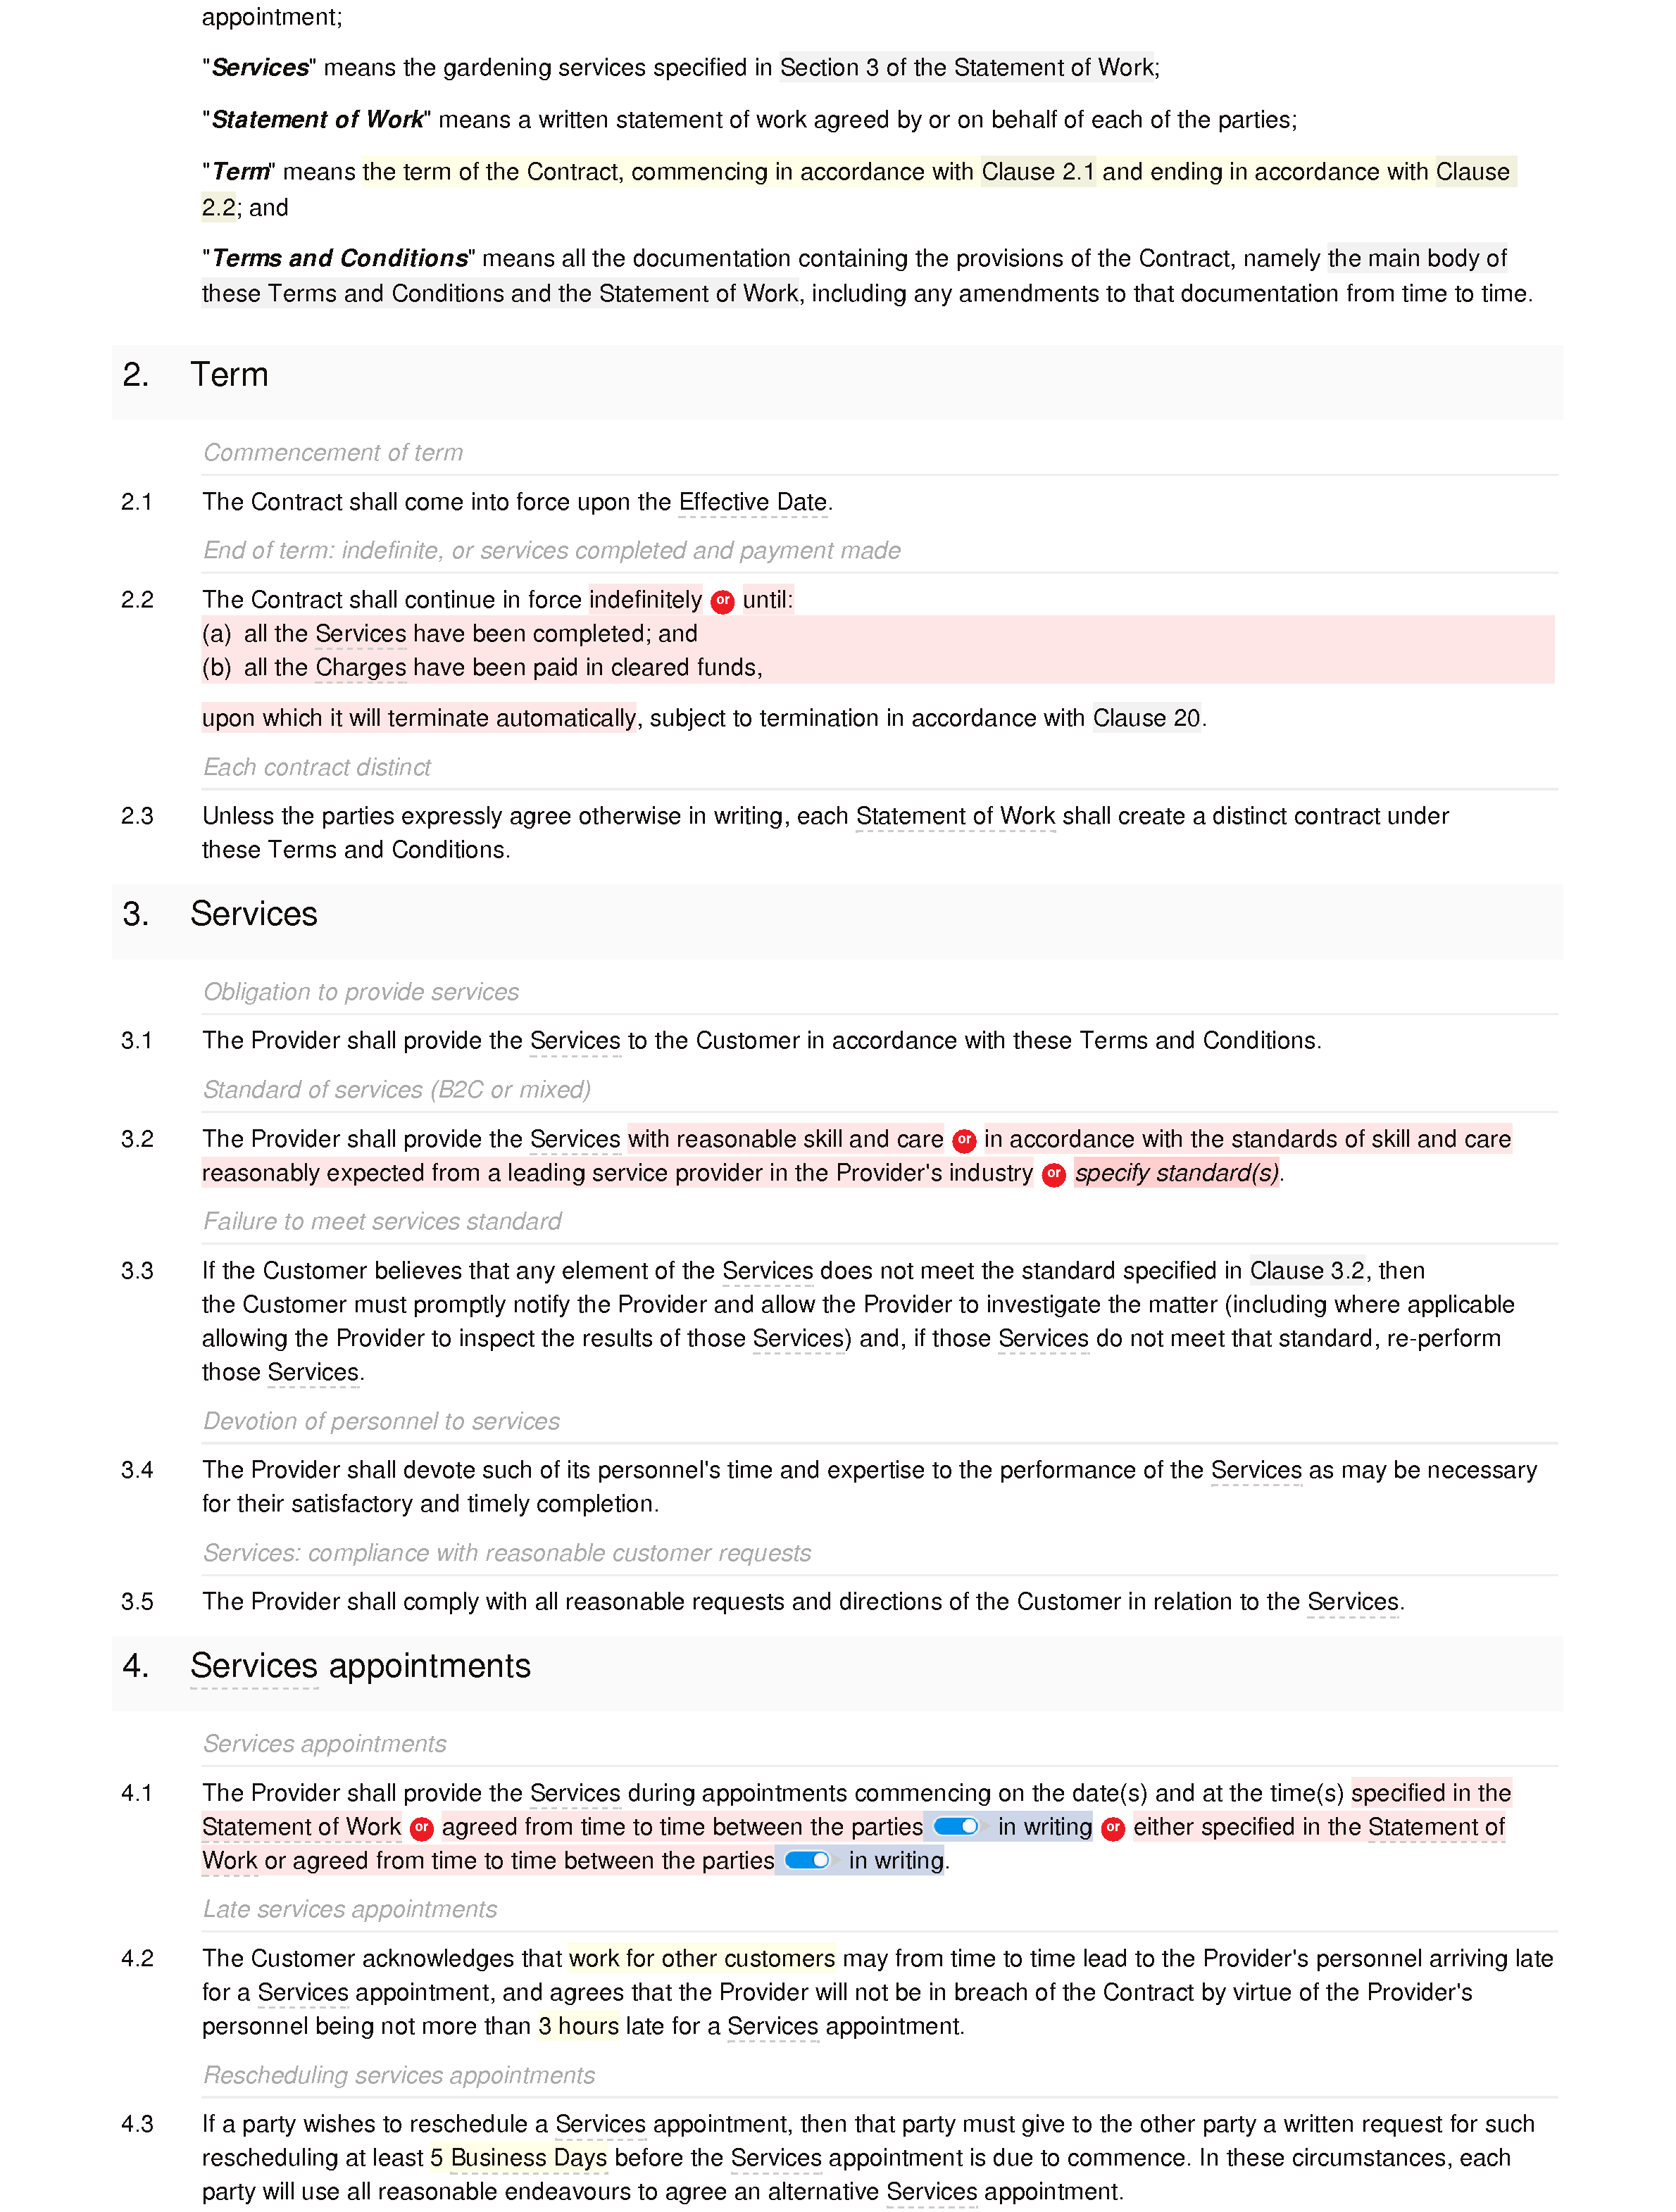 Gardening services terms and conditions document editor preview